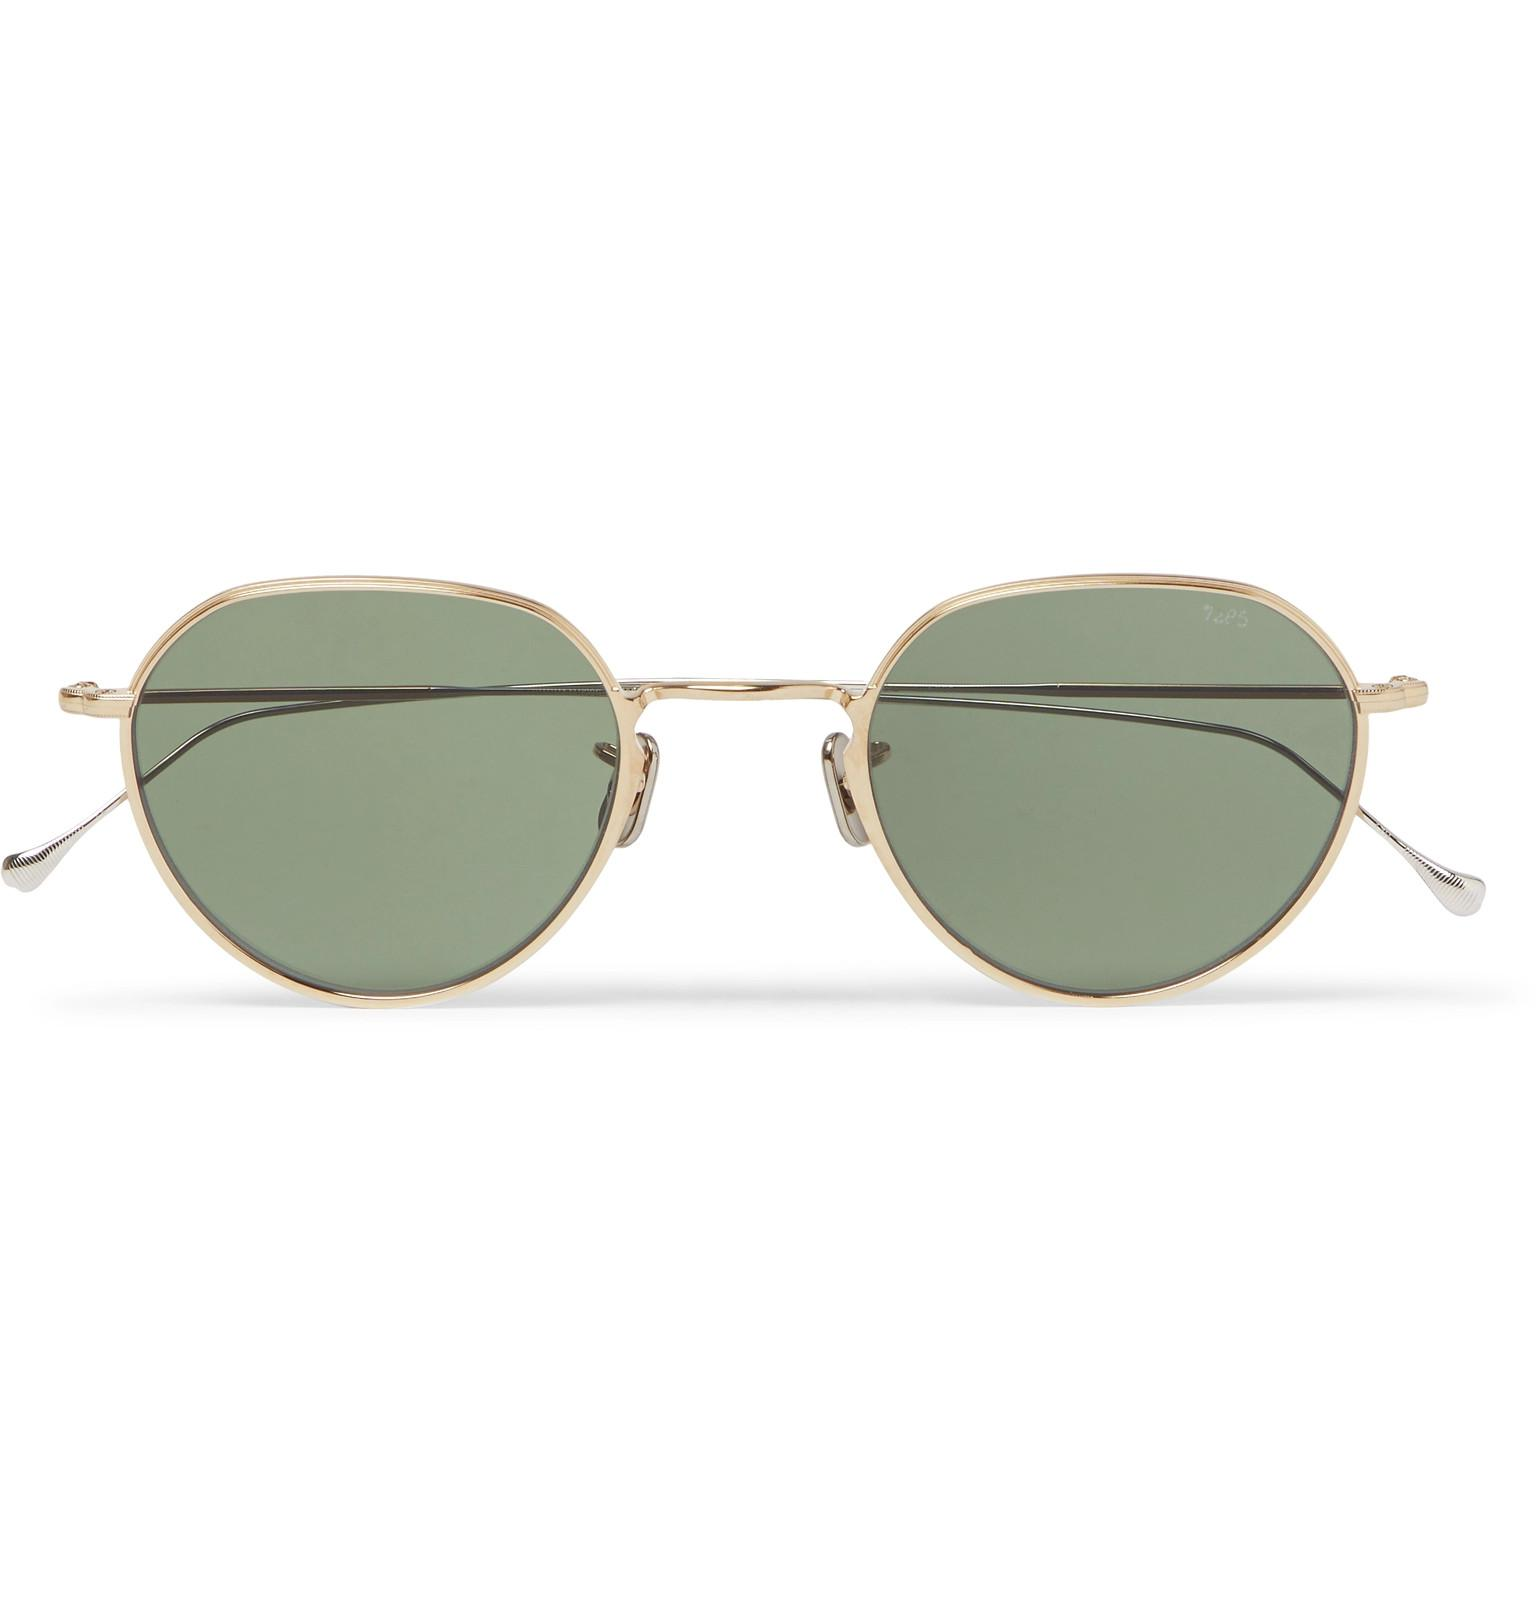 765 Round-frame Gold And Silver-tone Titanium Sunglasses Eyevan 7285 768cD